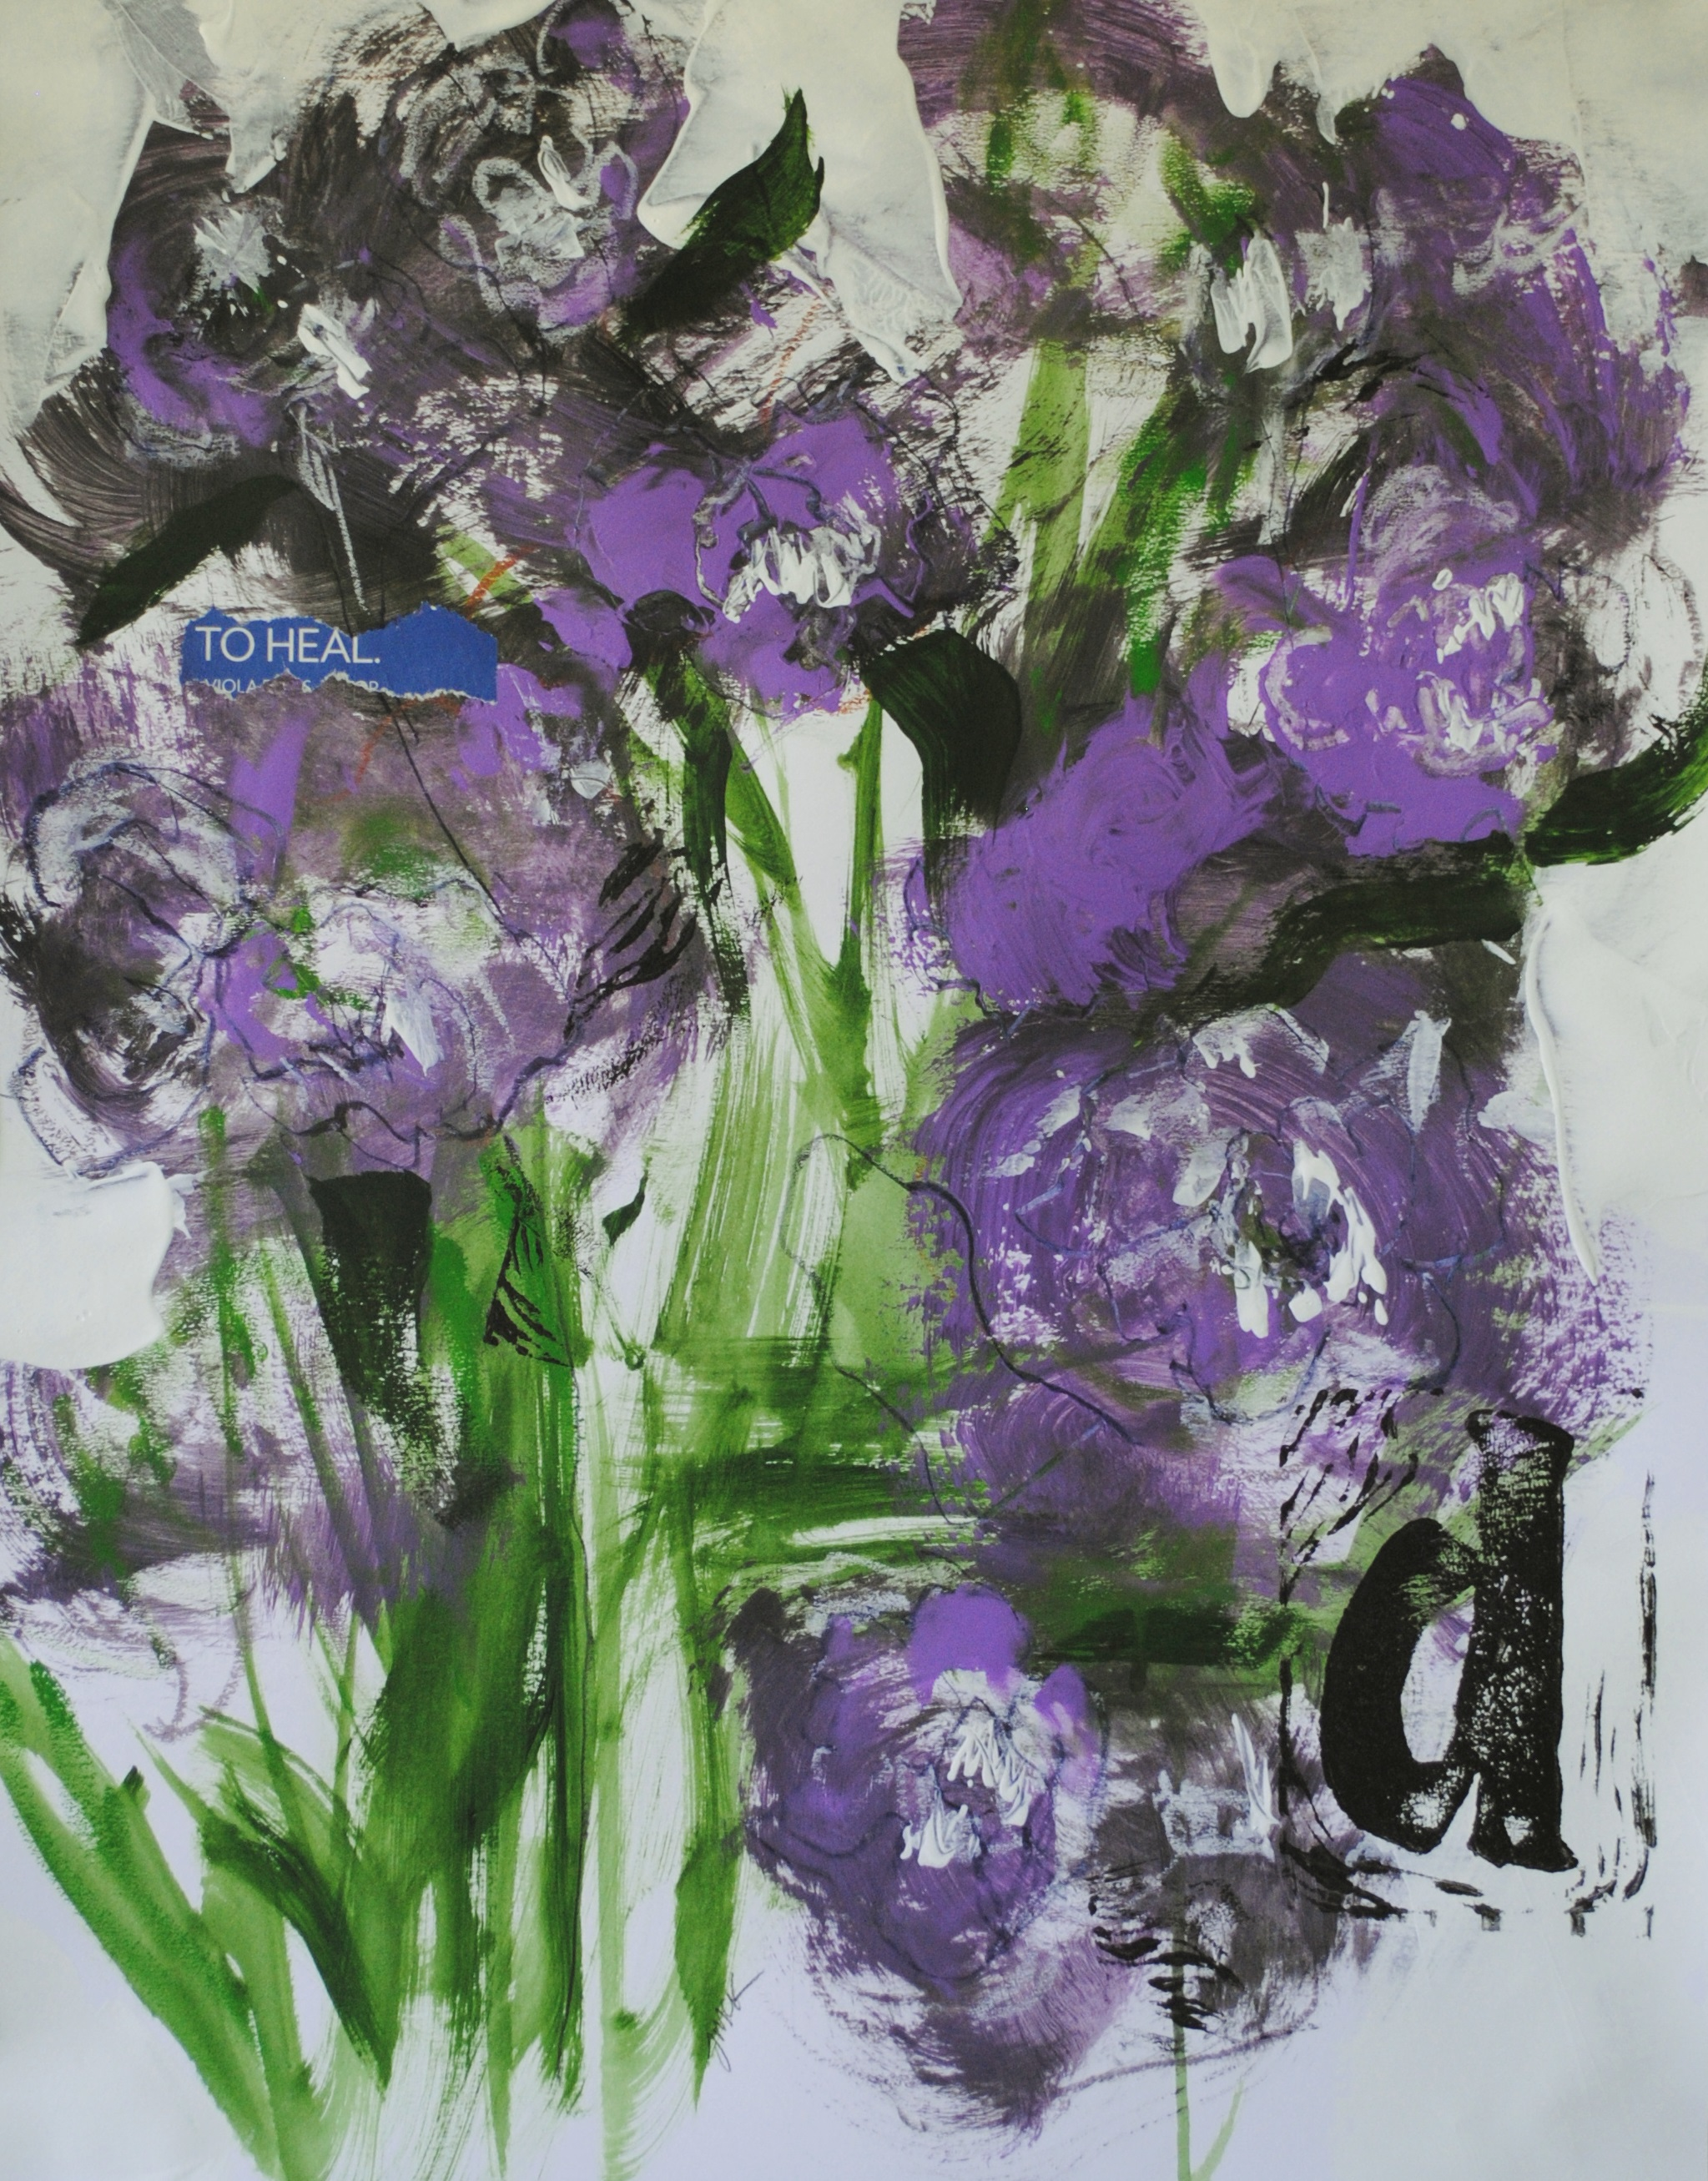 Absrtract painting of purple flowers with collage elements